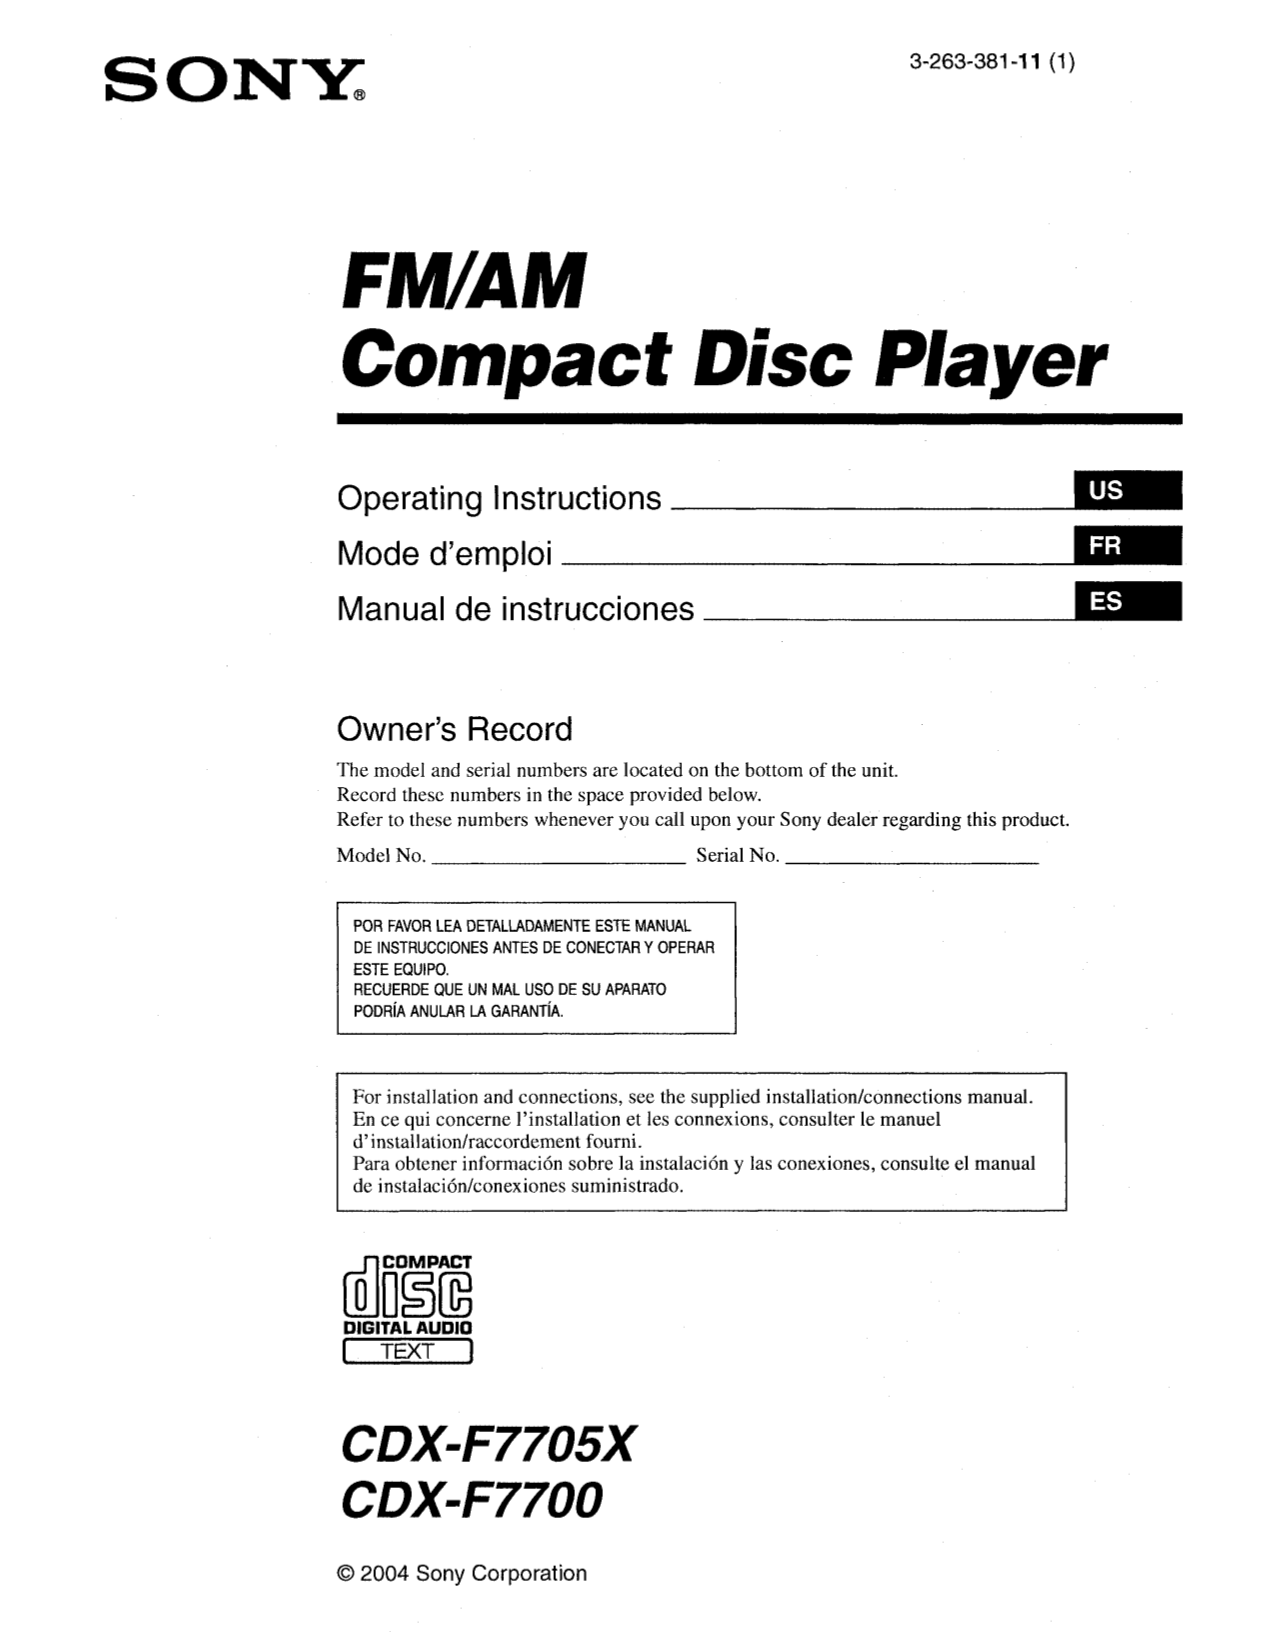 158f7700.pdf 0 download free pdf for sony cdx f7705x car receiver manual sony cdx l350 wiring diagram at readyjetset.co